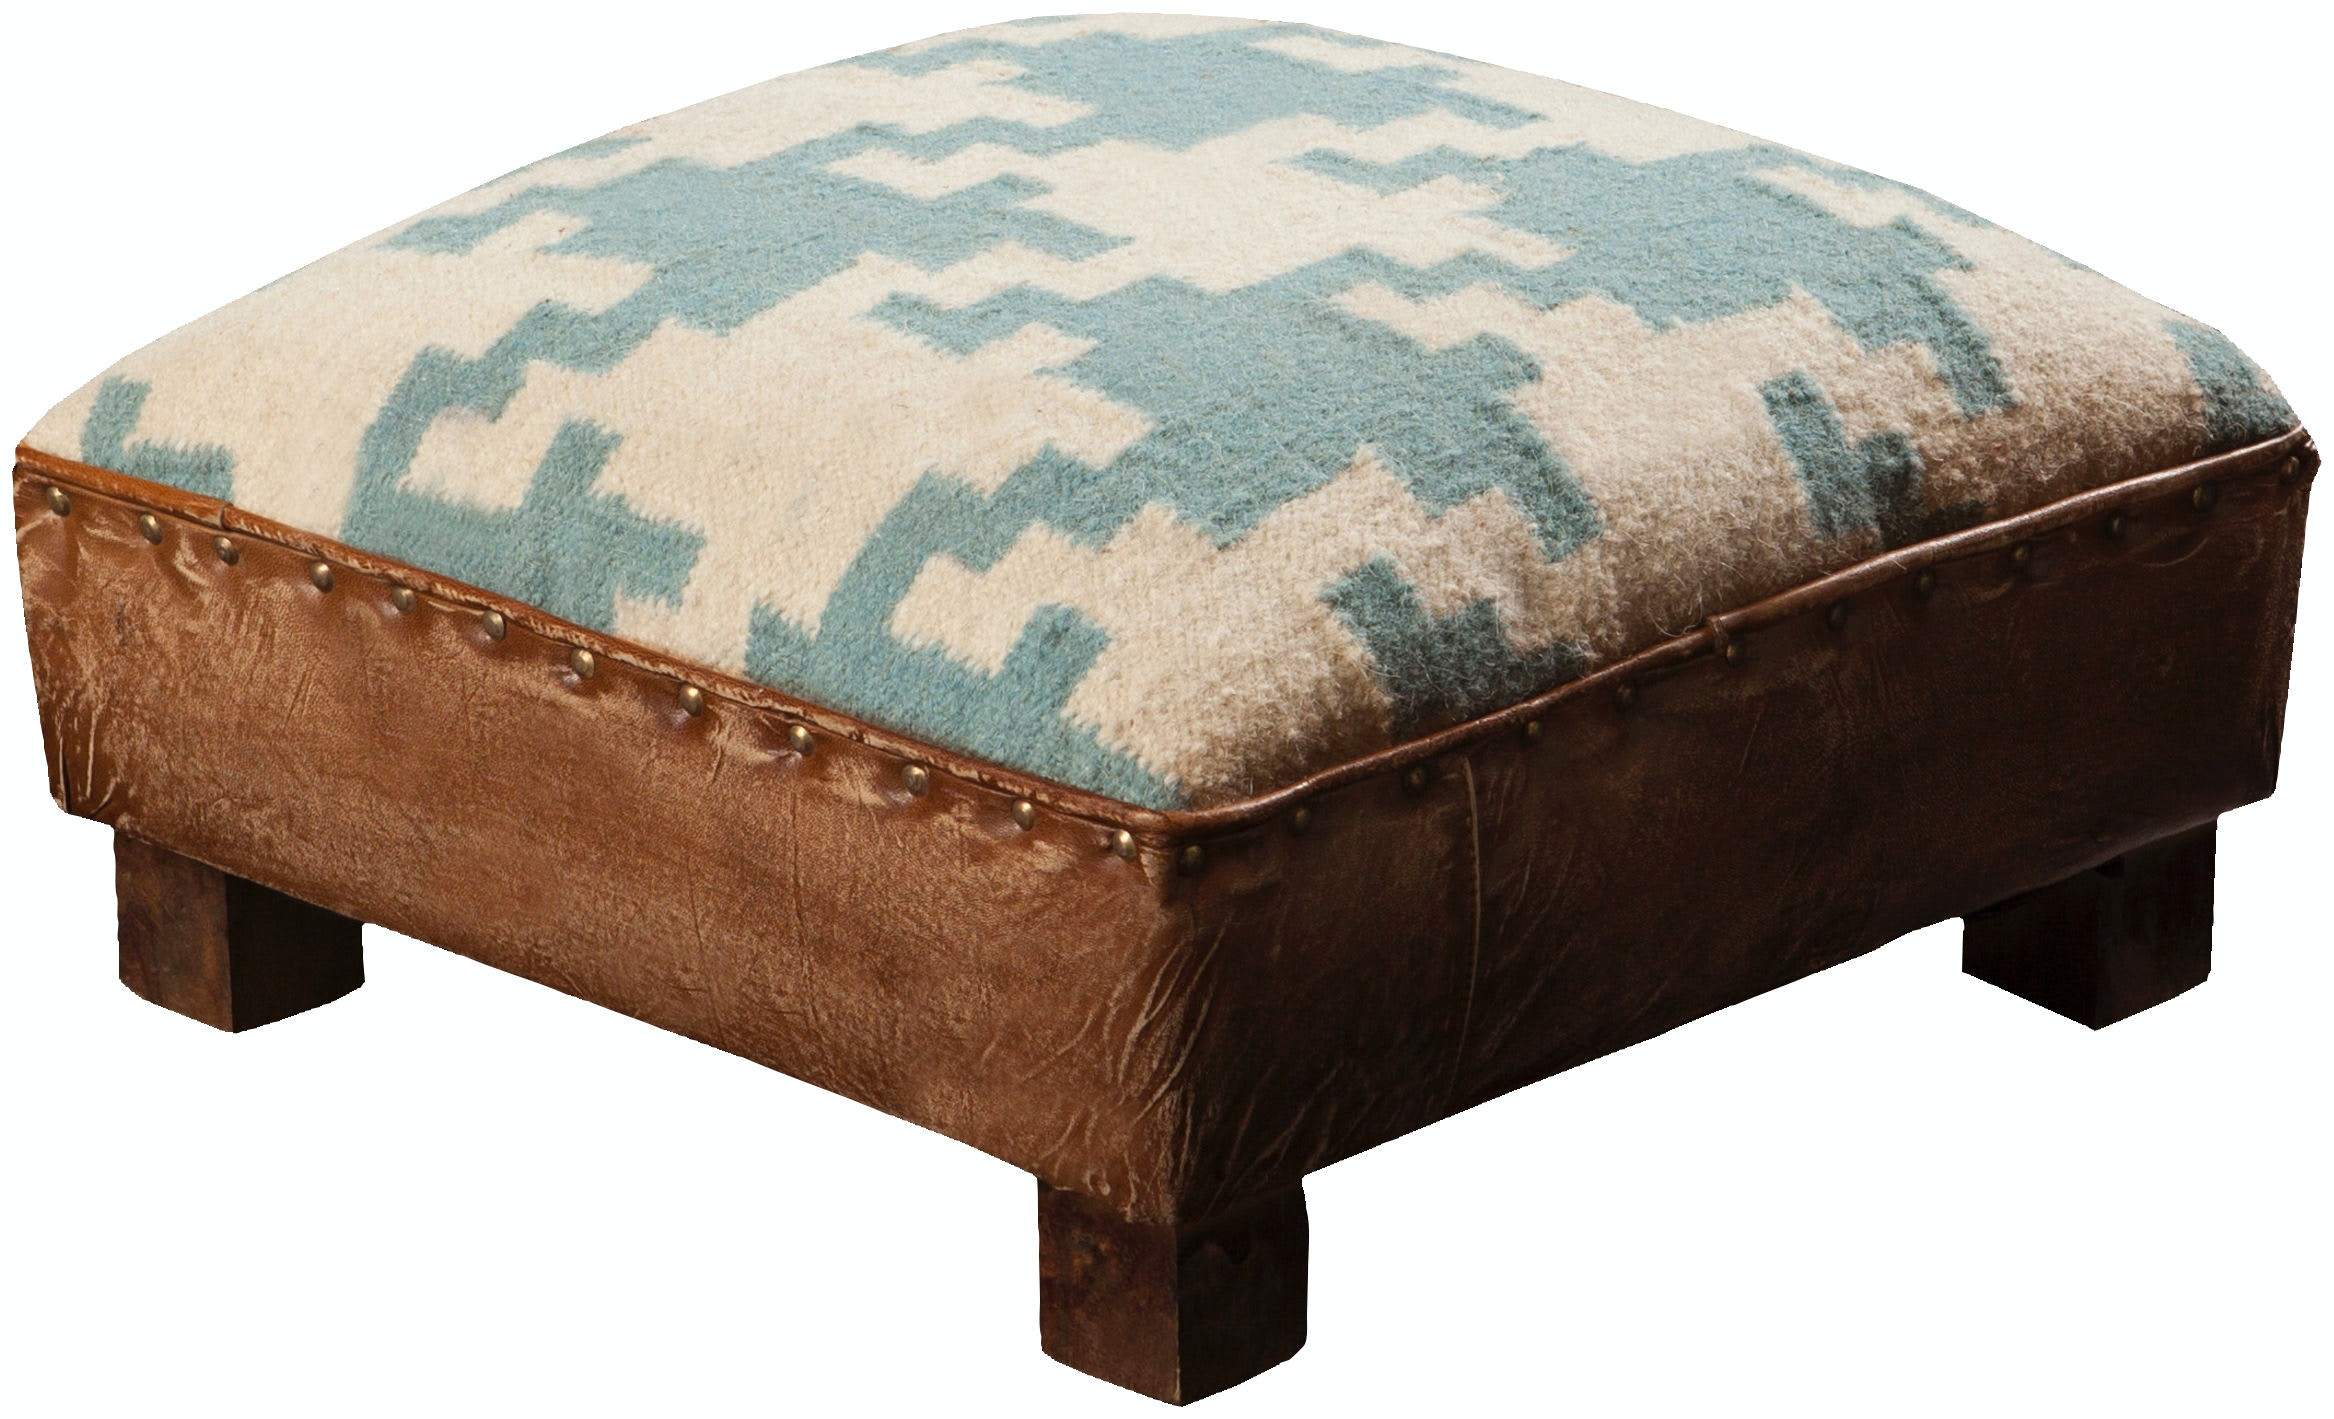 Genial Surya Furniture 18.8 X 18.8 X 9.2 Foot Stool FL1174 474723